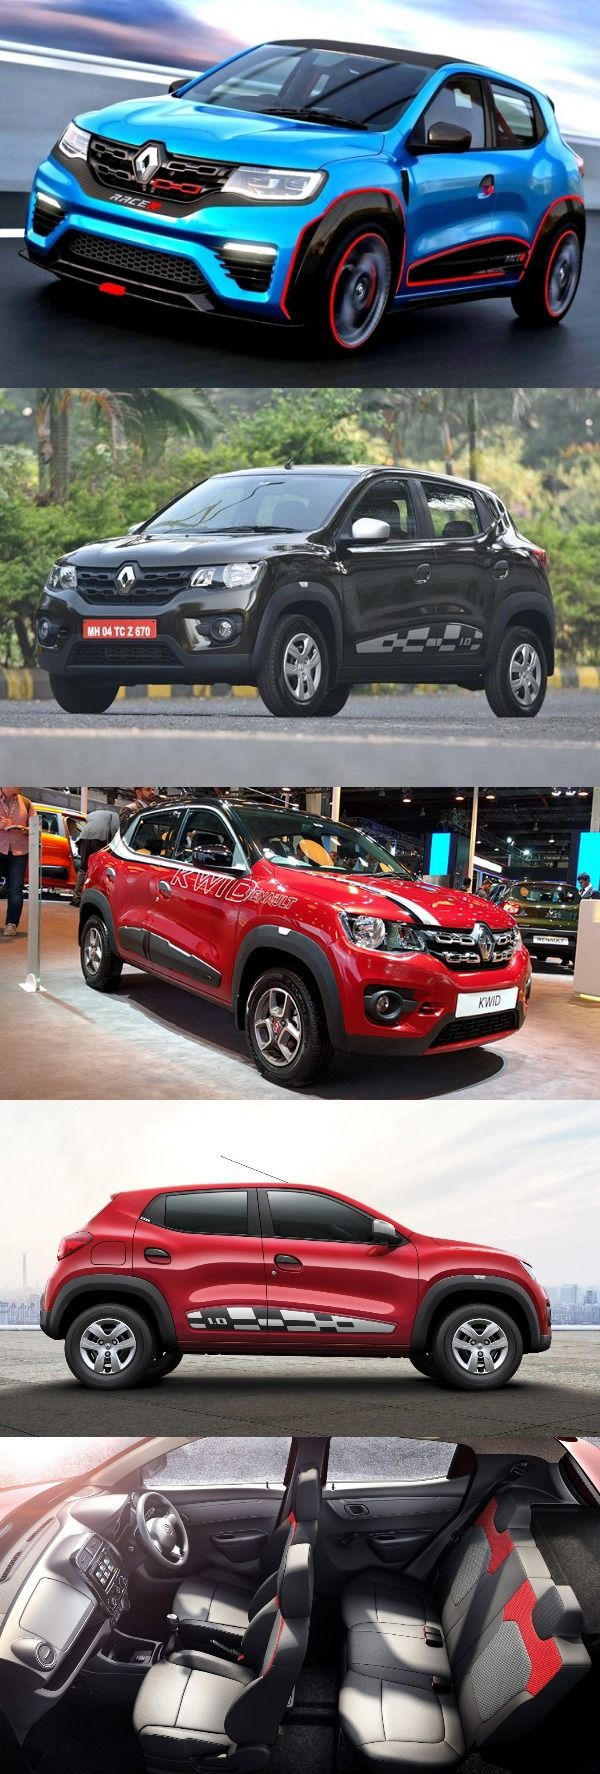 Renault Kwid Easy-R AMT Version Launched in India; Priced at INR 4.25 Lakhs